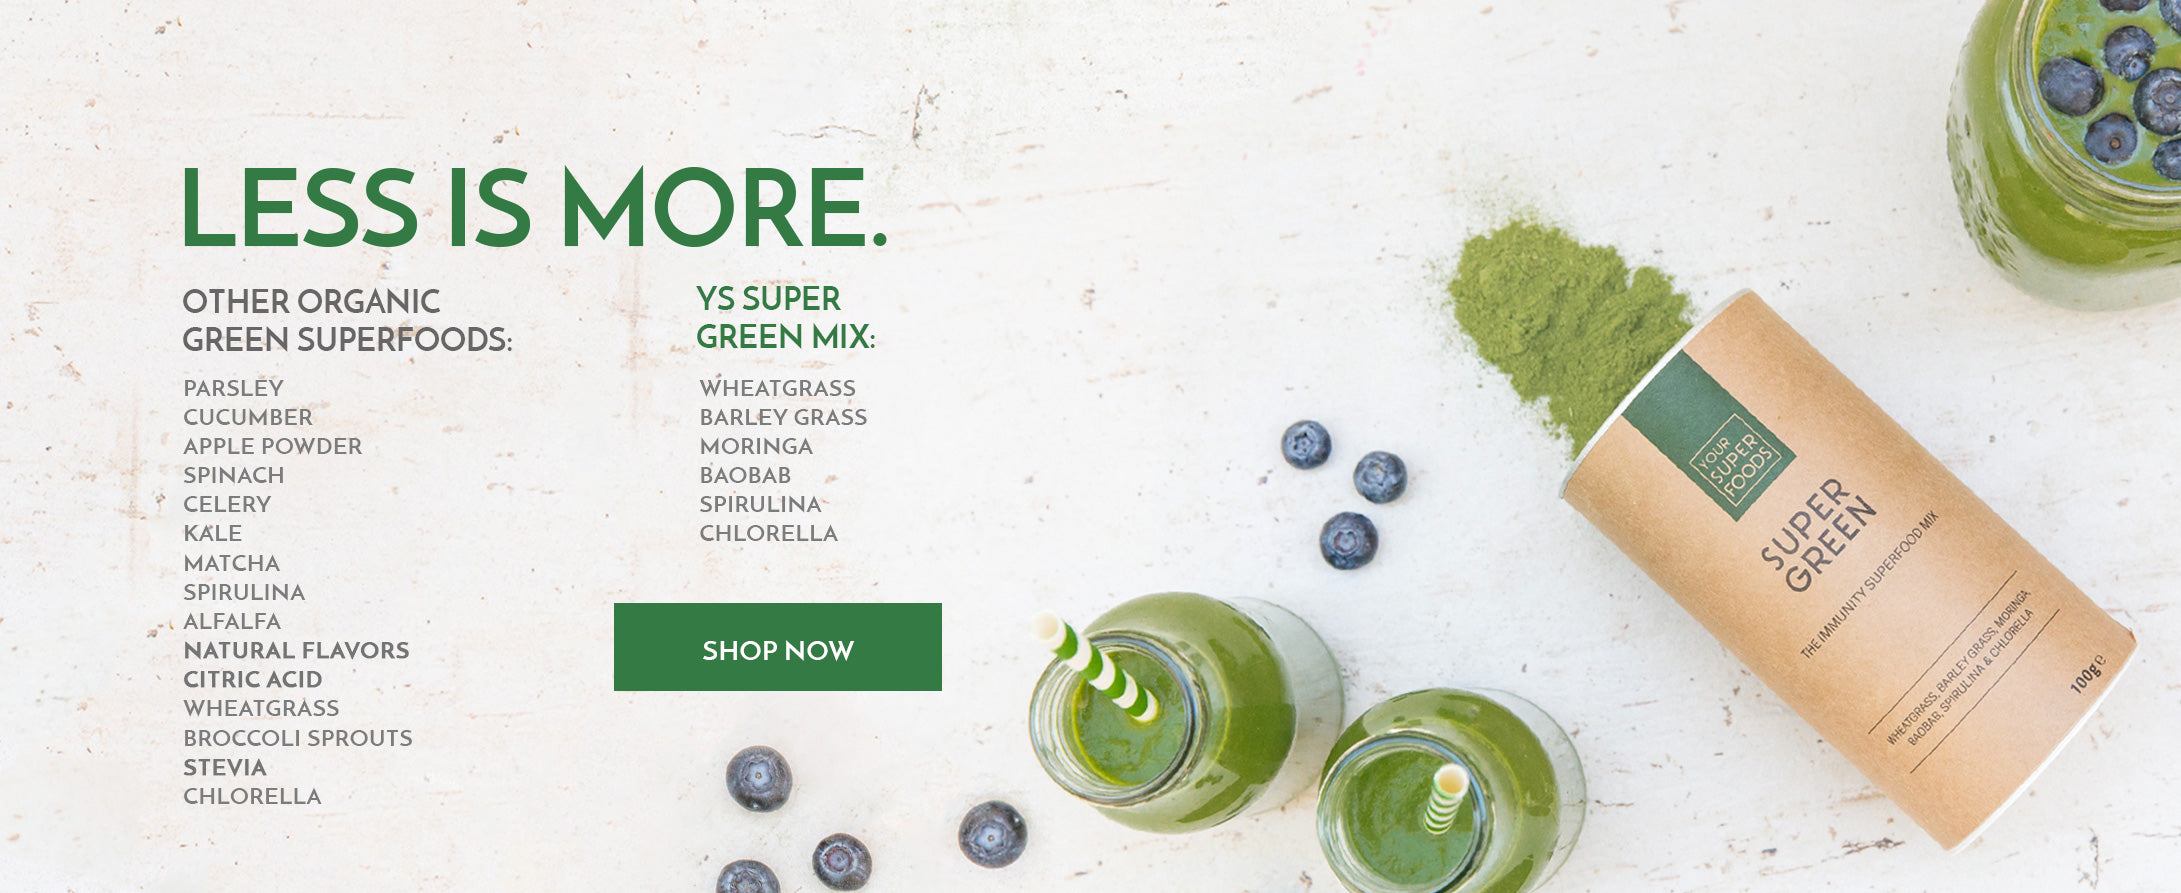 7 superfood mixes for easy, healthy smoothies and breakfasts